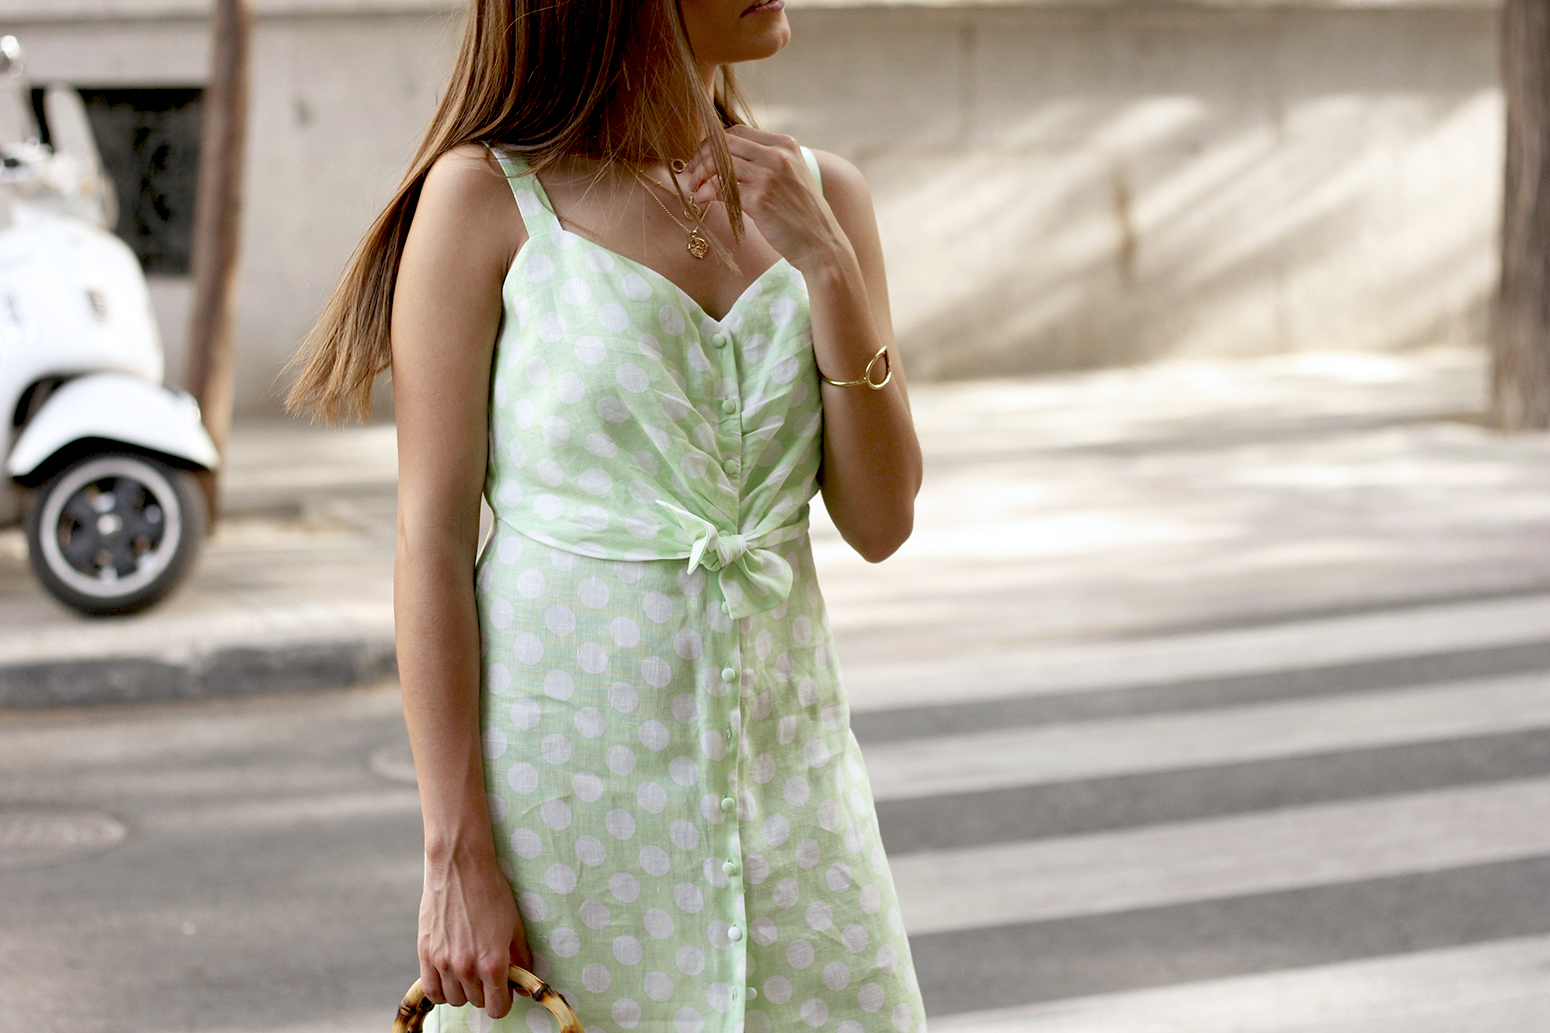 linen dress with polka dots uterqüe street style summer outfit 20199